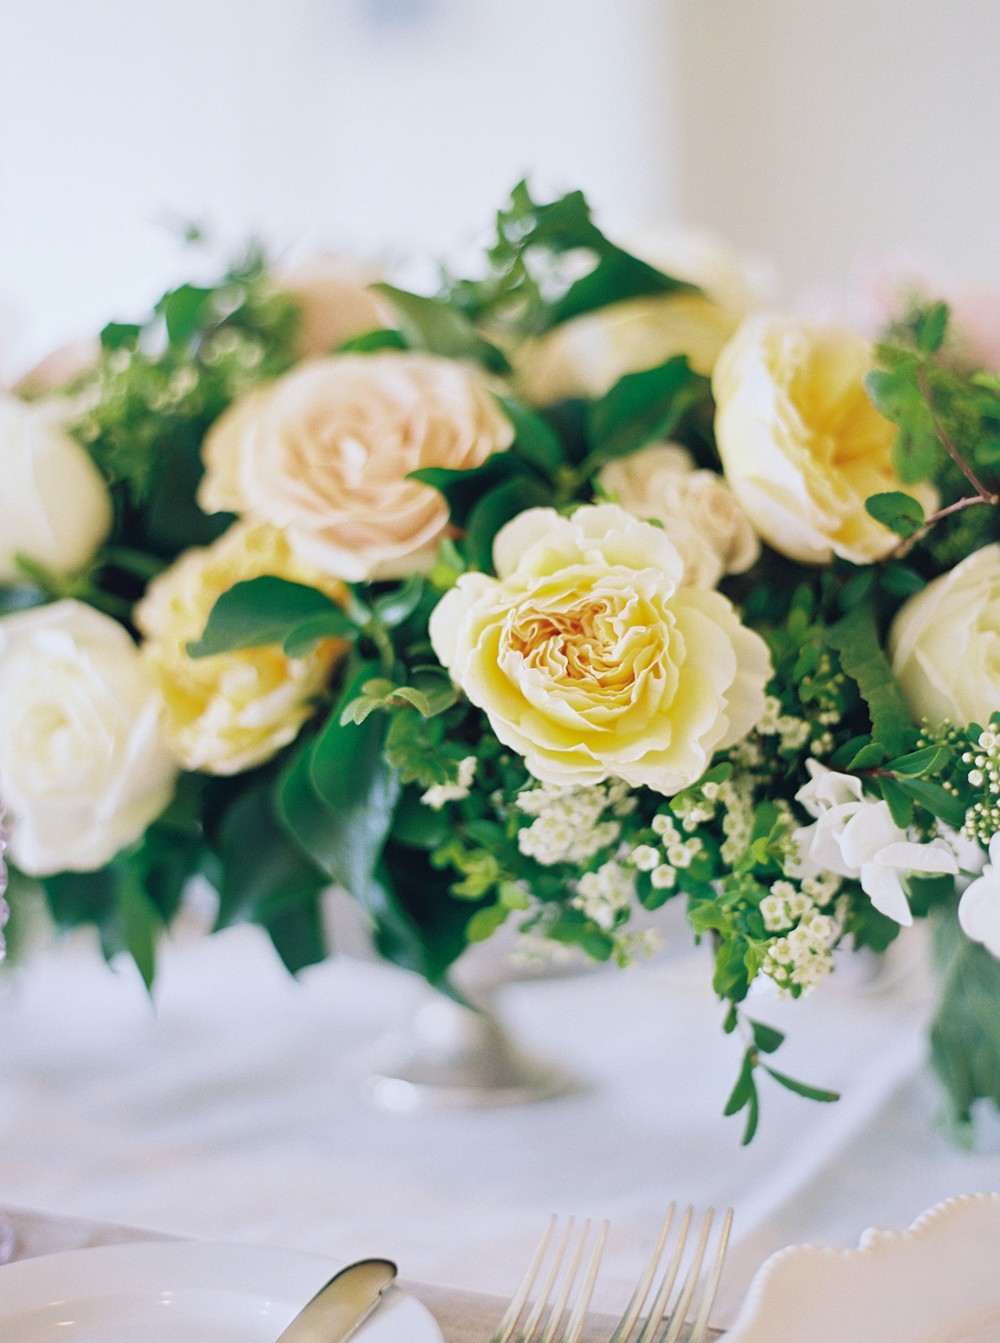 Buttercream colored wedding centerpiece   Sophisticated Real Wedding in Ontario by When He Found Her on Wedding Sparrow